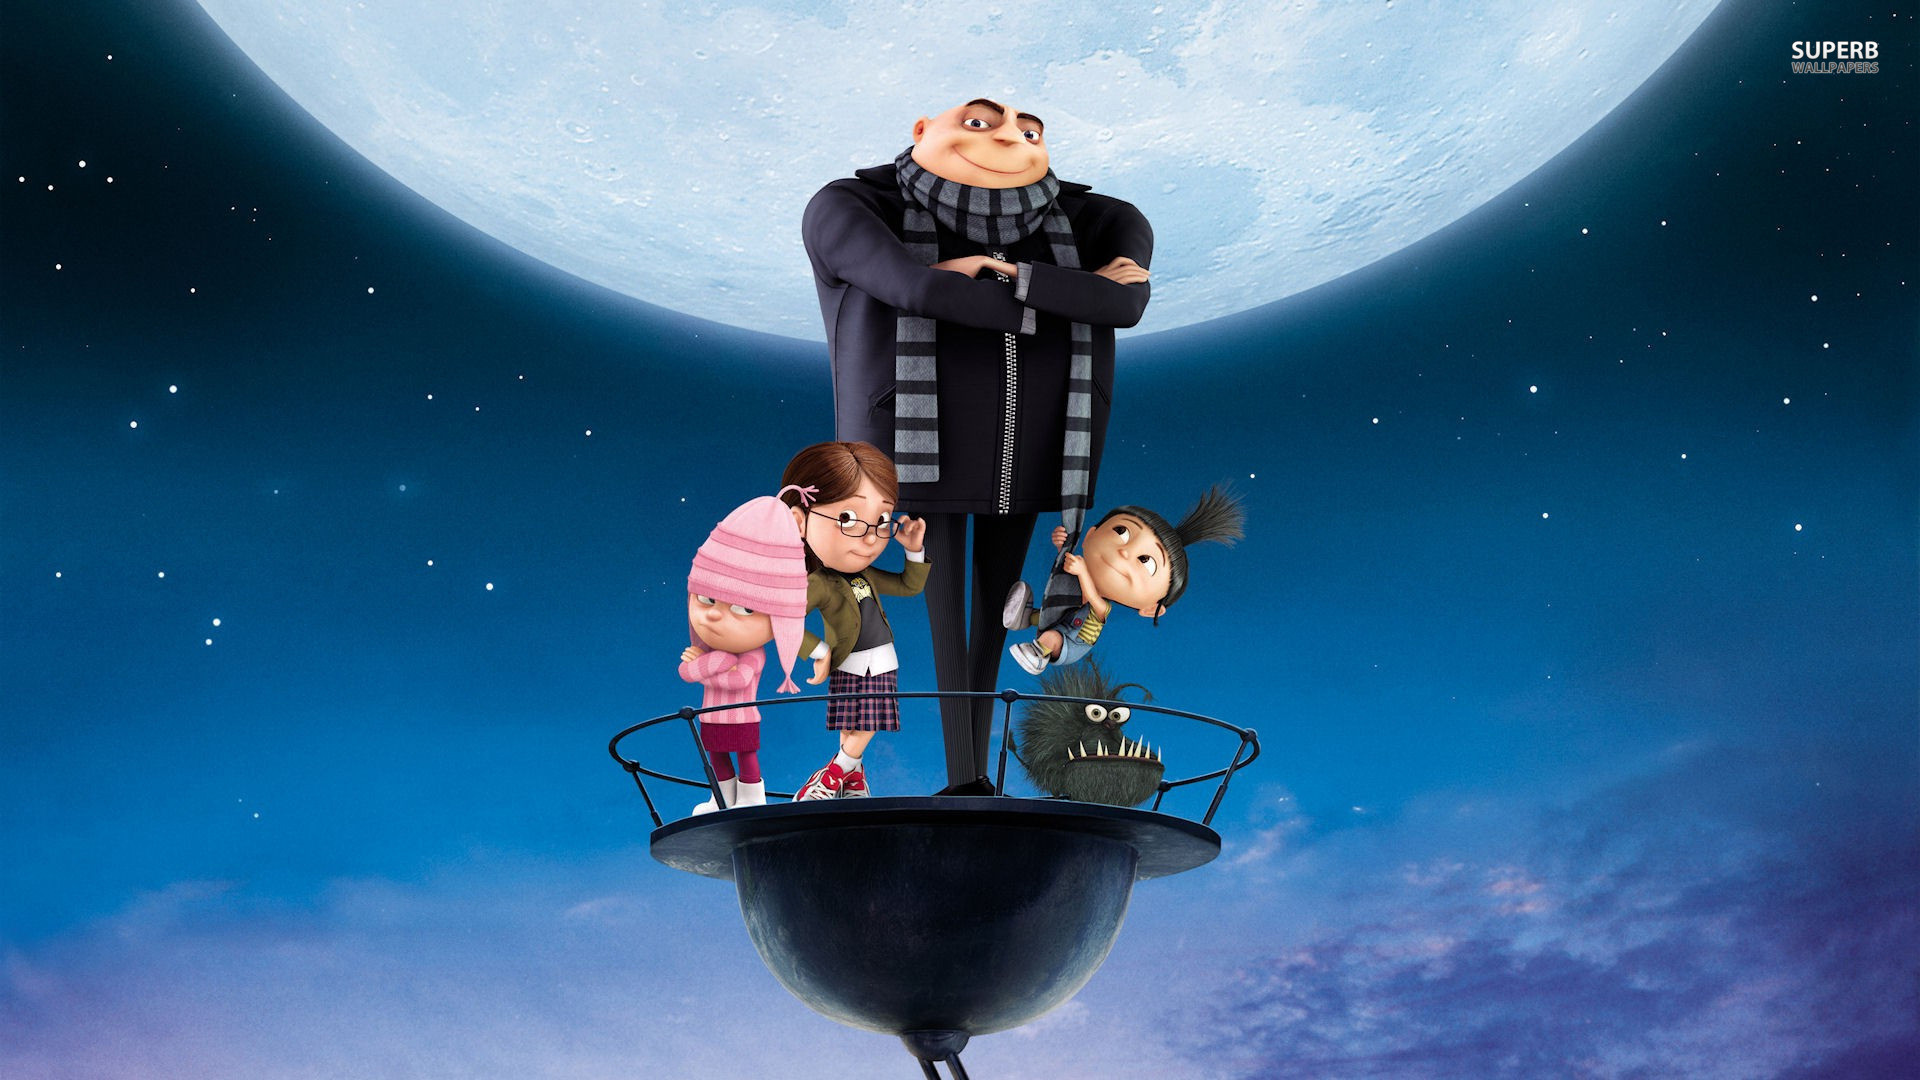 Despicable Me Wallpapers, Pictures, Images